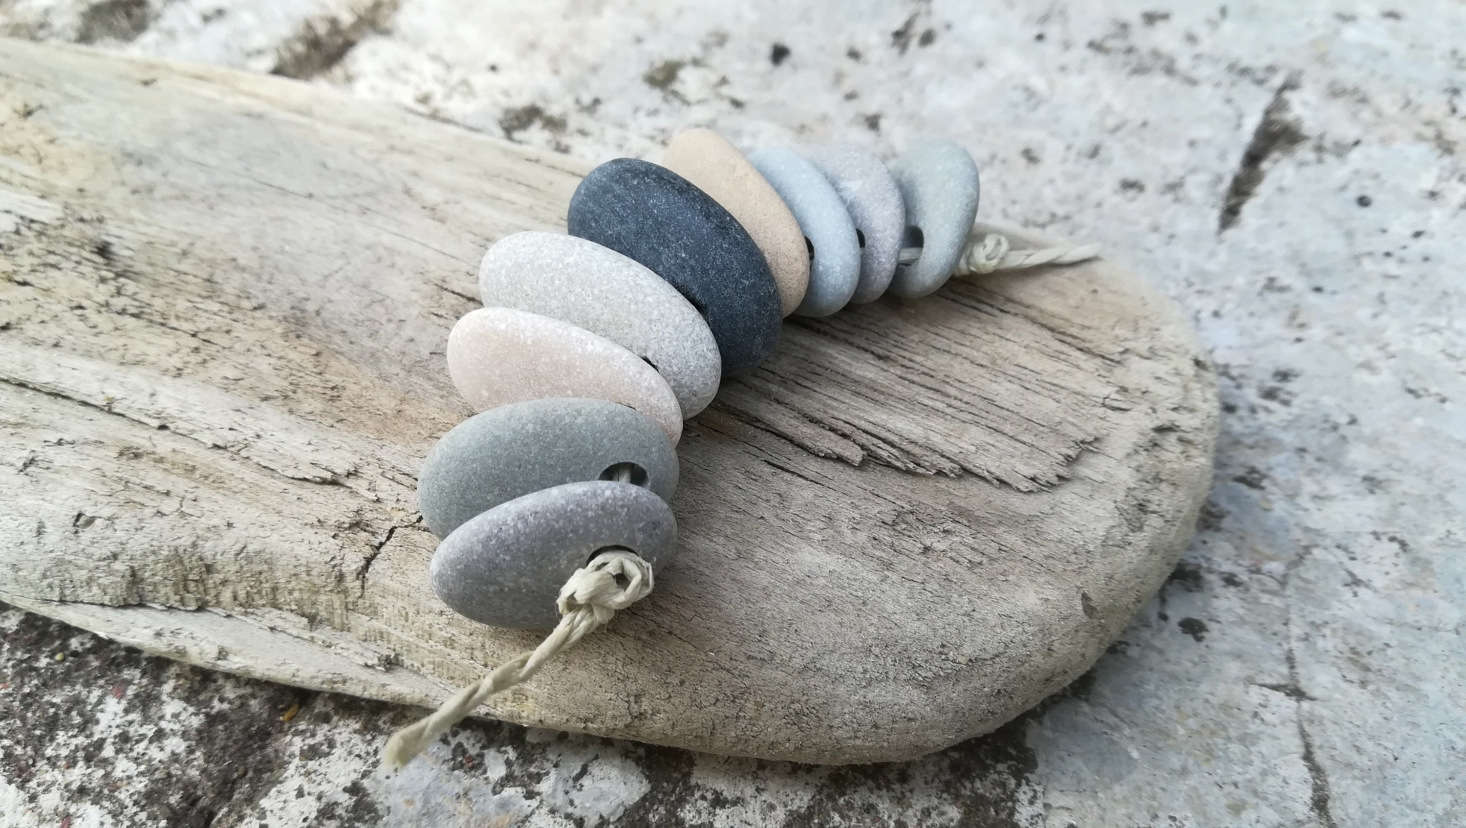 Don't have a diamond drill bit? You can order predrilled pebbles on Etsy. These Top-Drilled Sea Pebbles are sold by MixedCraftGoods; $7.29 for 9 stones.